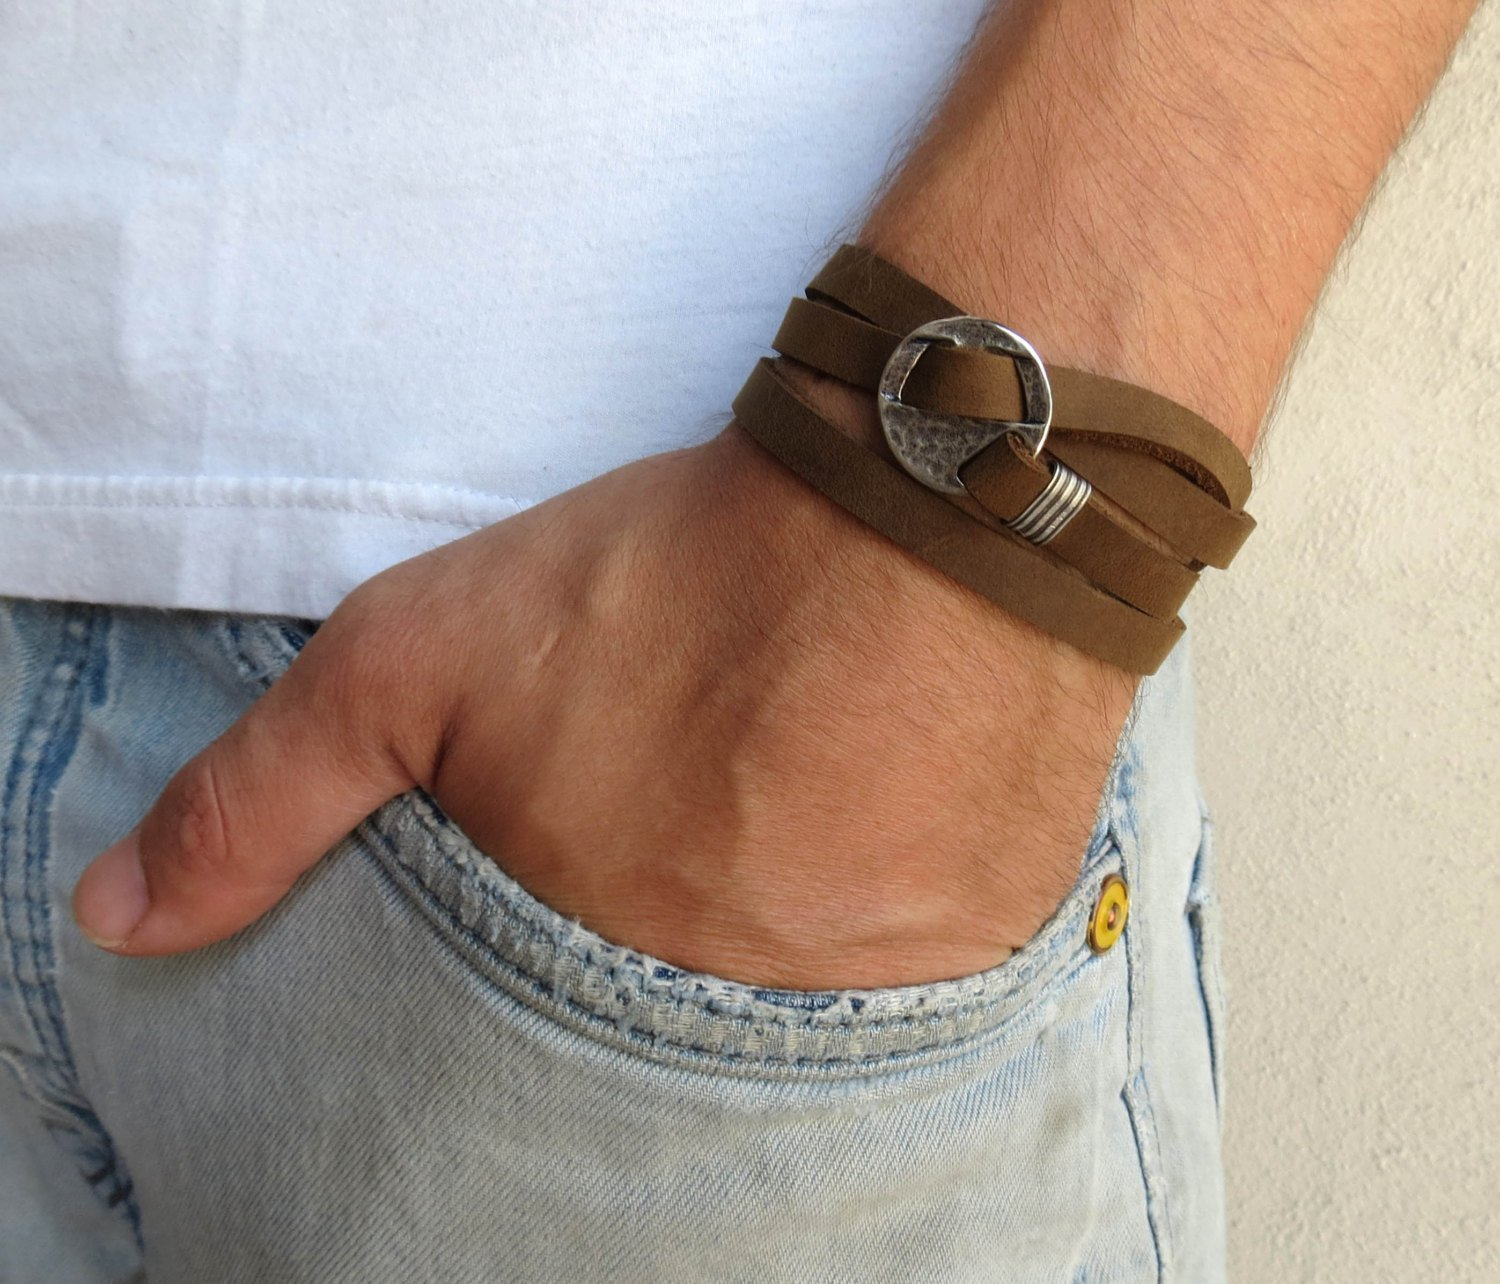 Handmade Wrap Brown Genuine Leather Bracelet For Men Set With Silver Plated Circle Pendant By Galis Jewelry - Geometric Bracelet For Men - Brown Bracelet For Men - Jewelry For Men